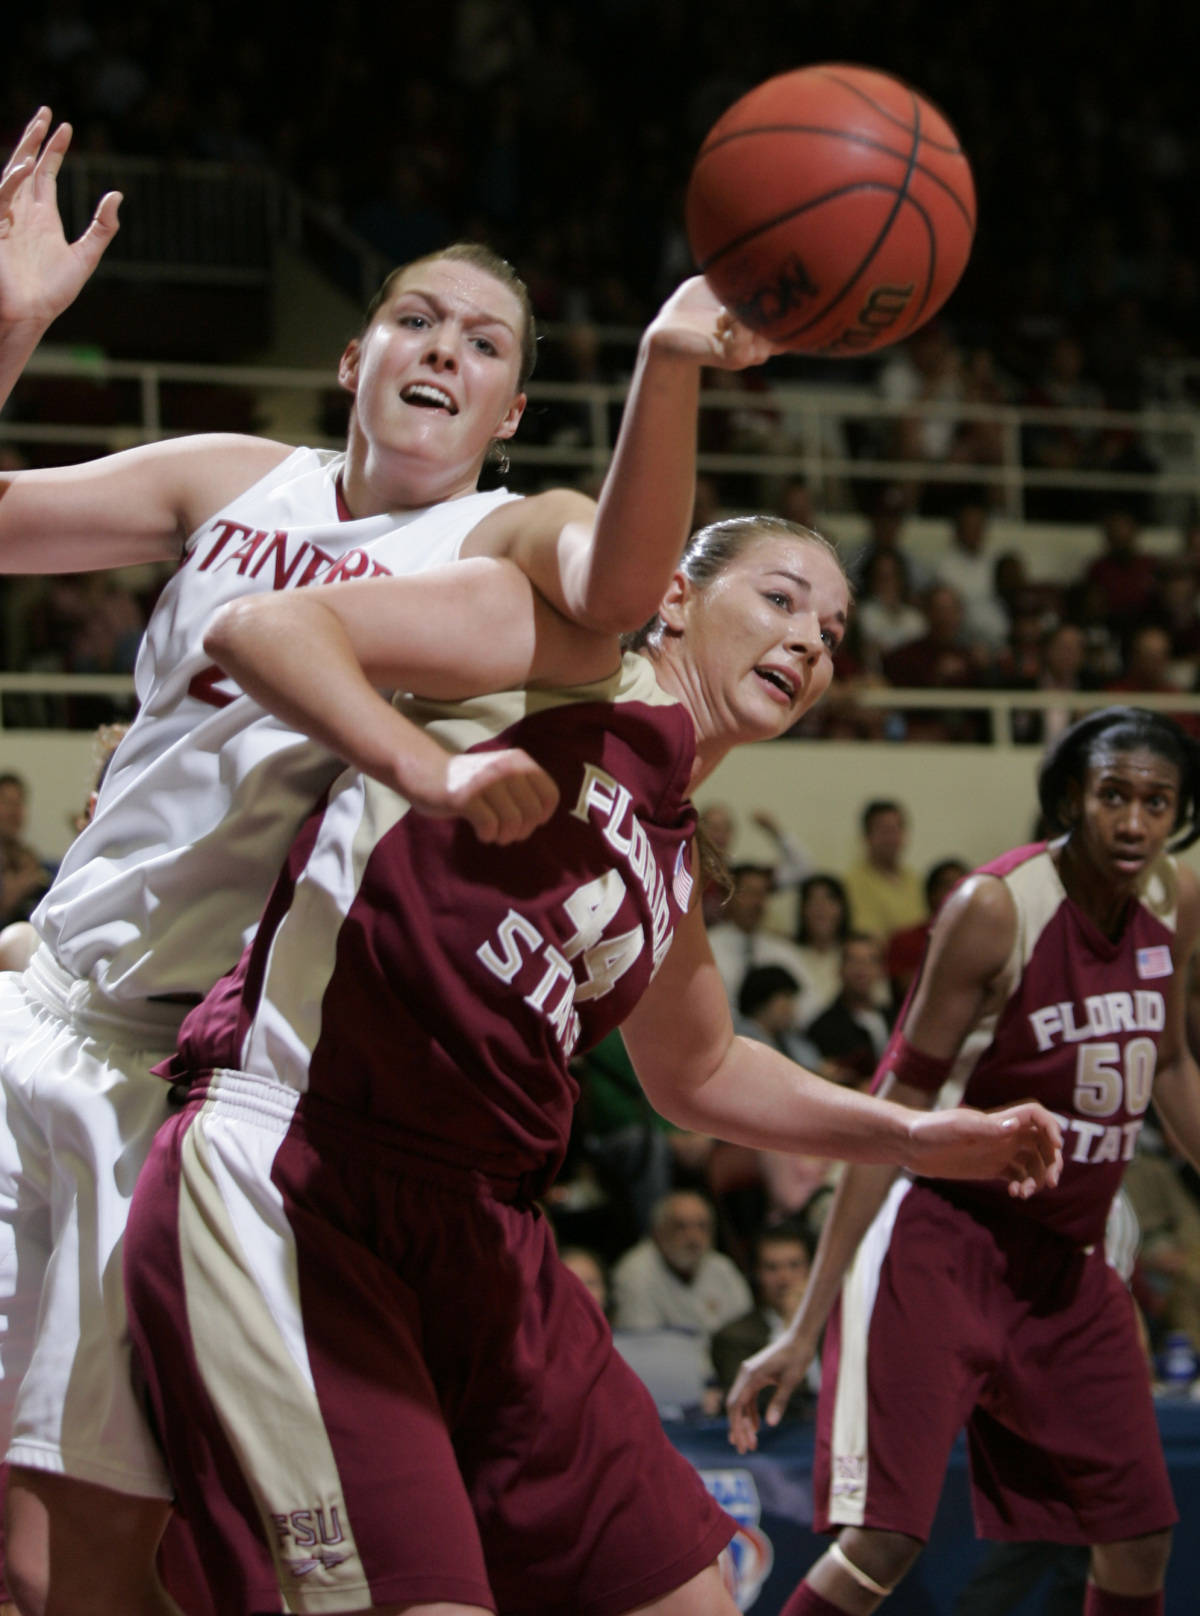 Stanford center Jayne Appel, left, and Florida State cener Nikki Anthony, right, go for a loose ball in the first half of their second-round game in the NCAA women's basketball tournament in Stanford, Calif., Monday, March 19, 2007. (AP Photo/Paul Sakuma)